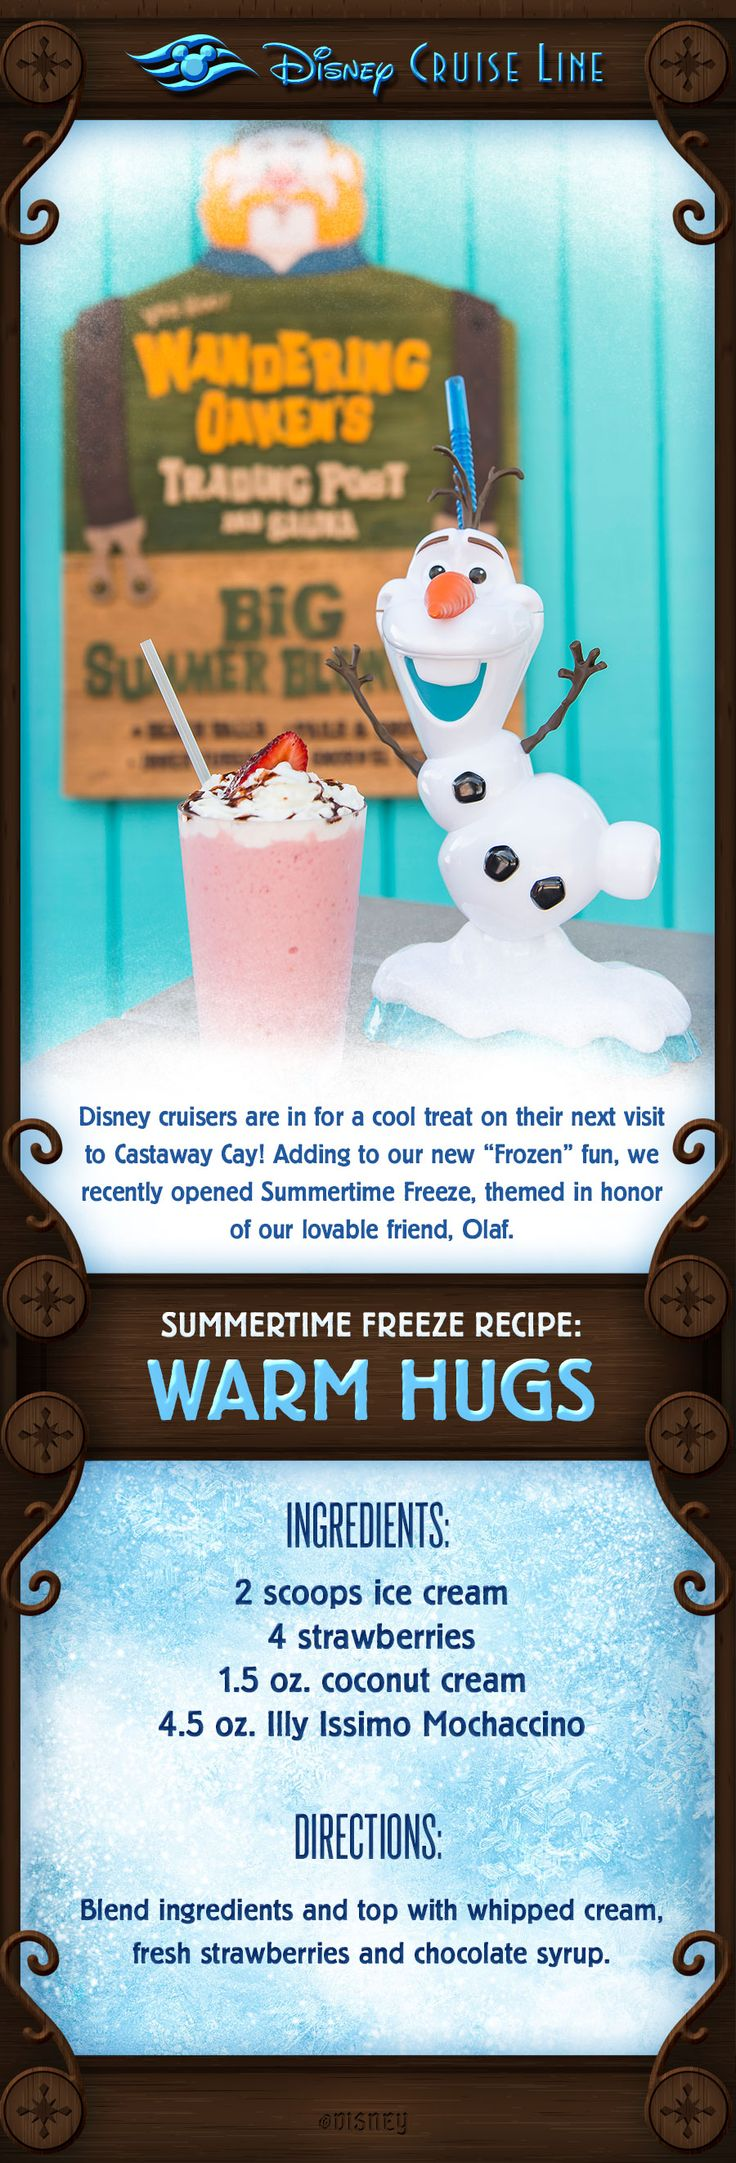 """Disney cruisers are in for a cool treat on their next visit to Castaway Cay! Adding to our new """"Frozen"""" fun, we recently opened Summertime Freeze! Check out this cool treat inspired by the new location!"""